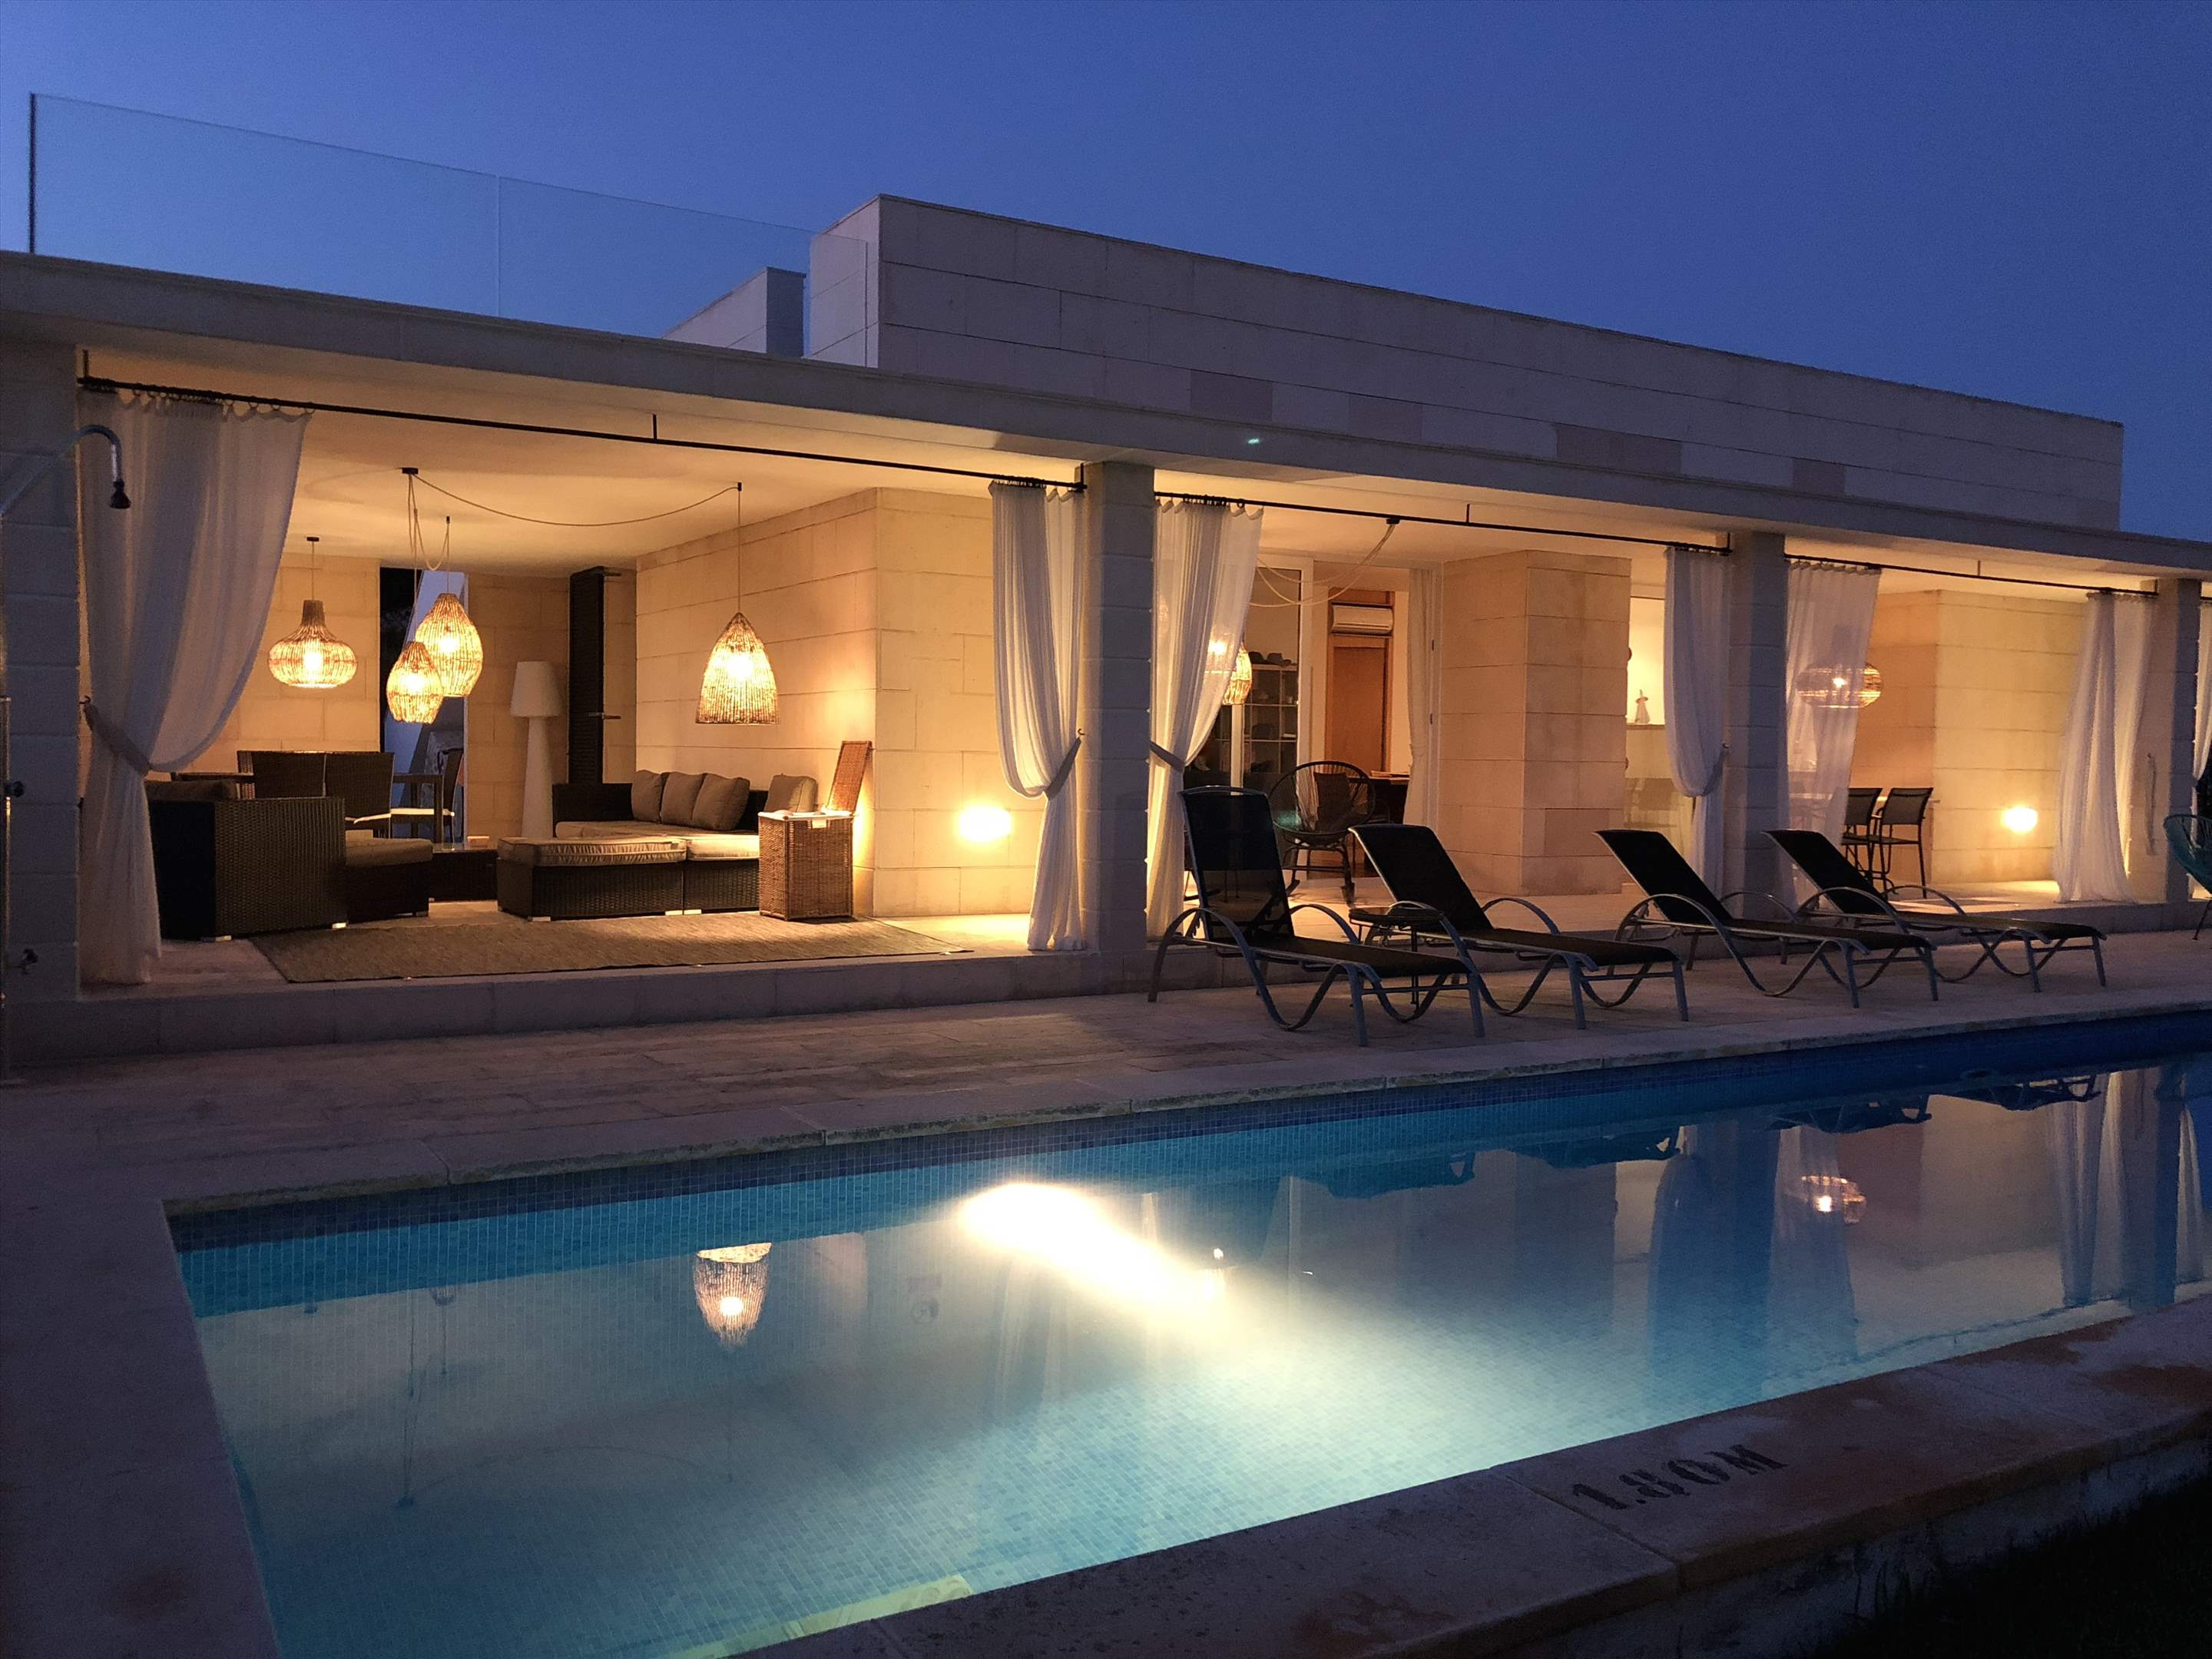 Villa Zapa, 3 bedroom villa in Mahon, San Luis & South East, Menorca Photo #6